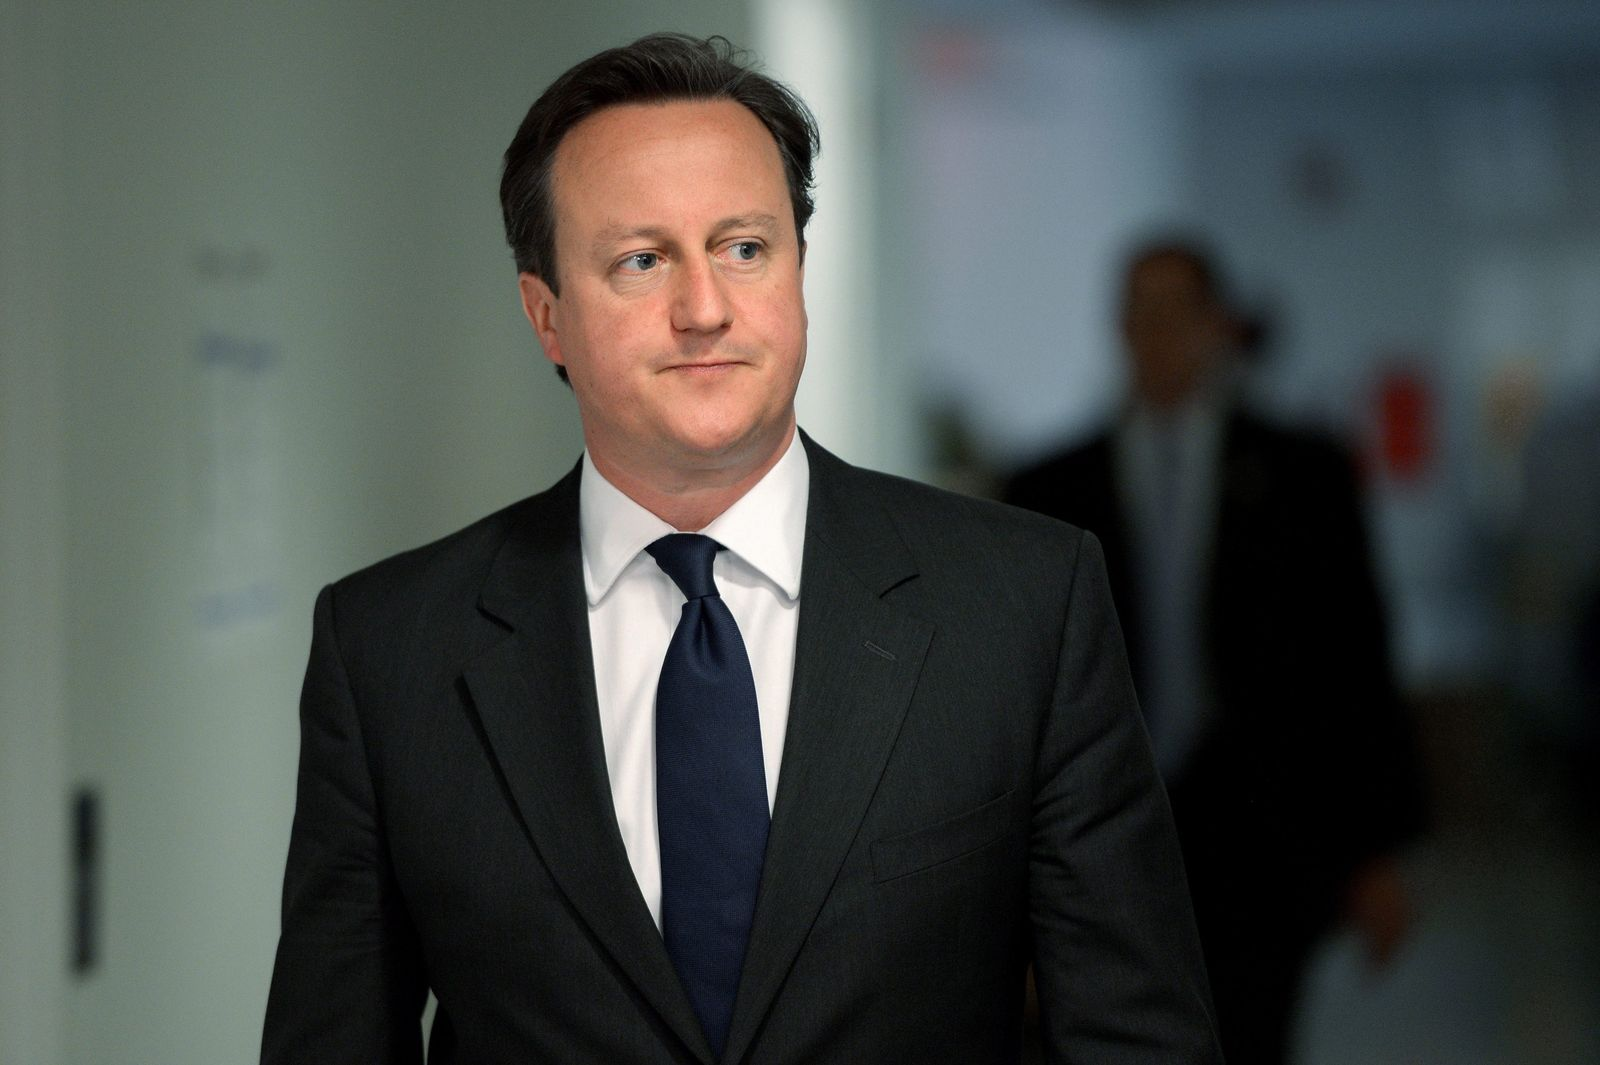 David Cameron at United Nations